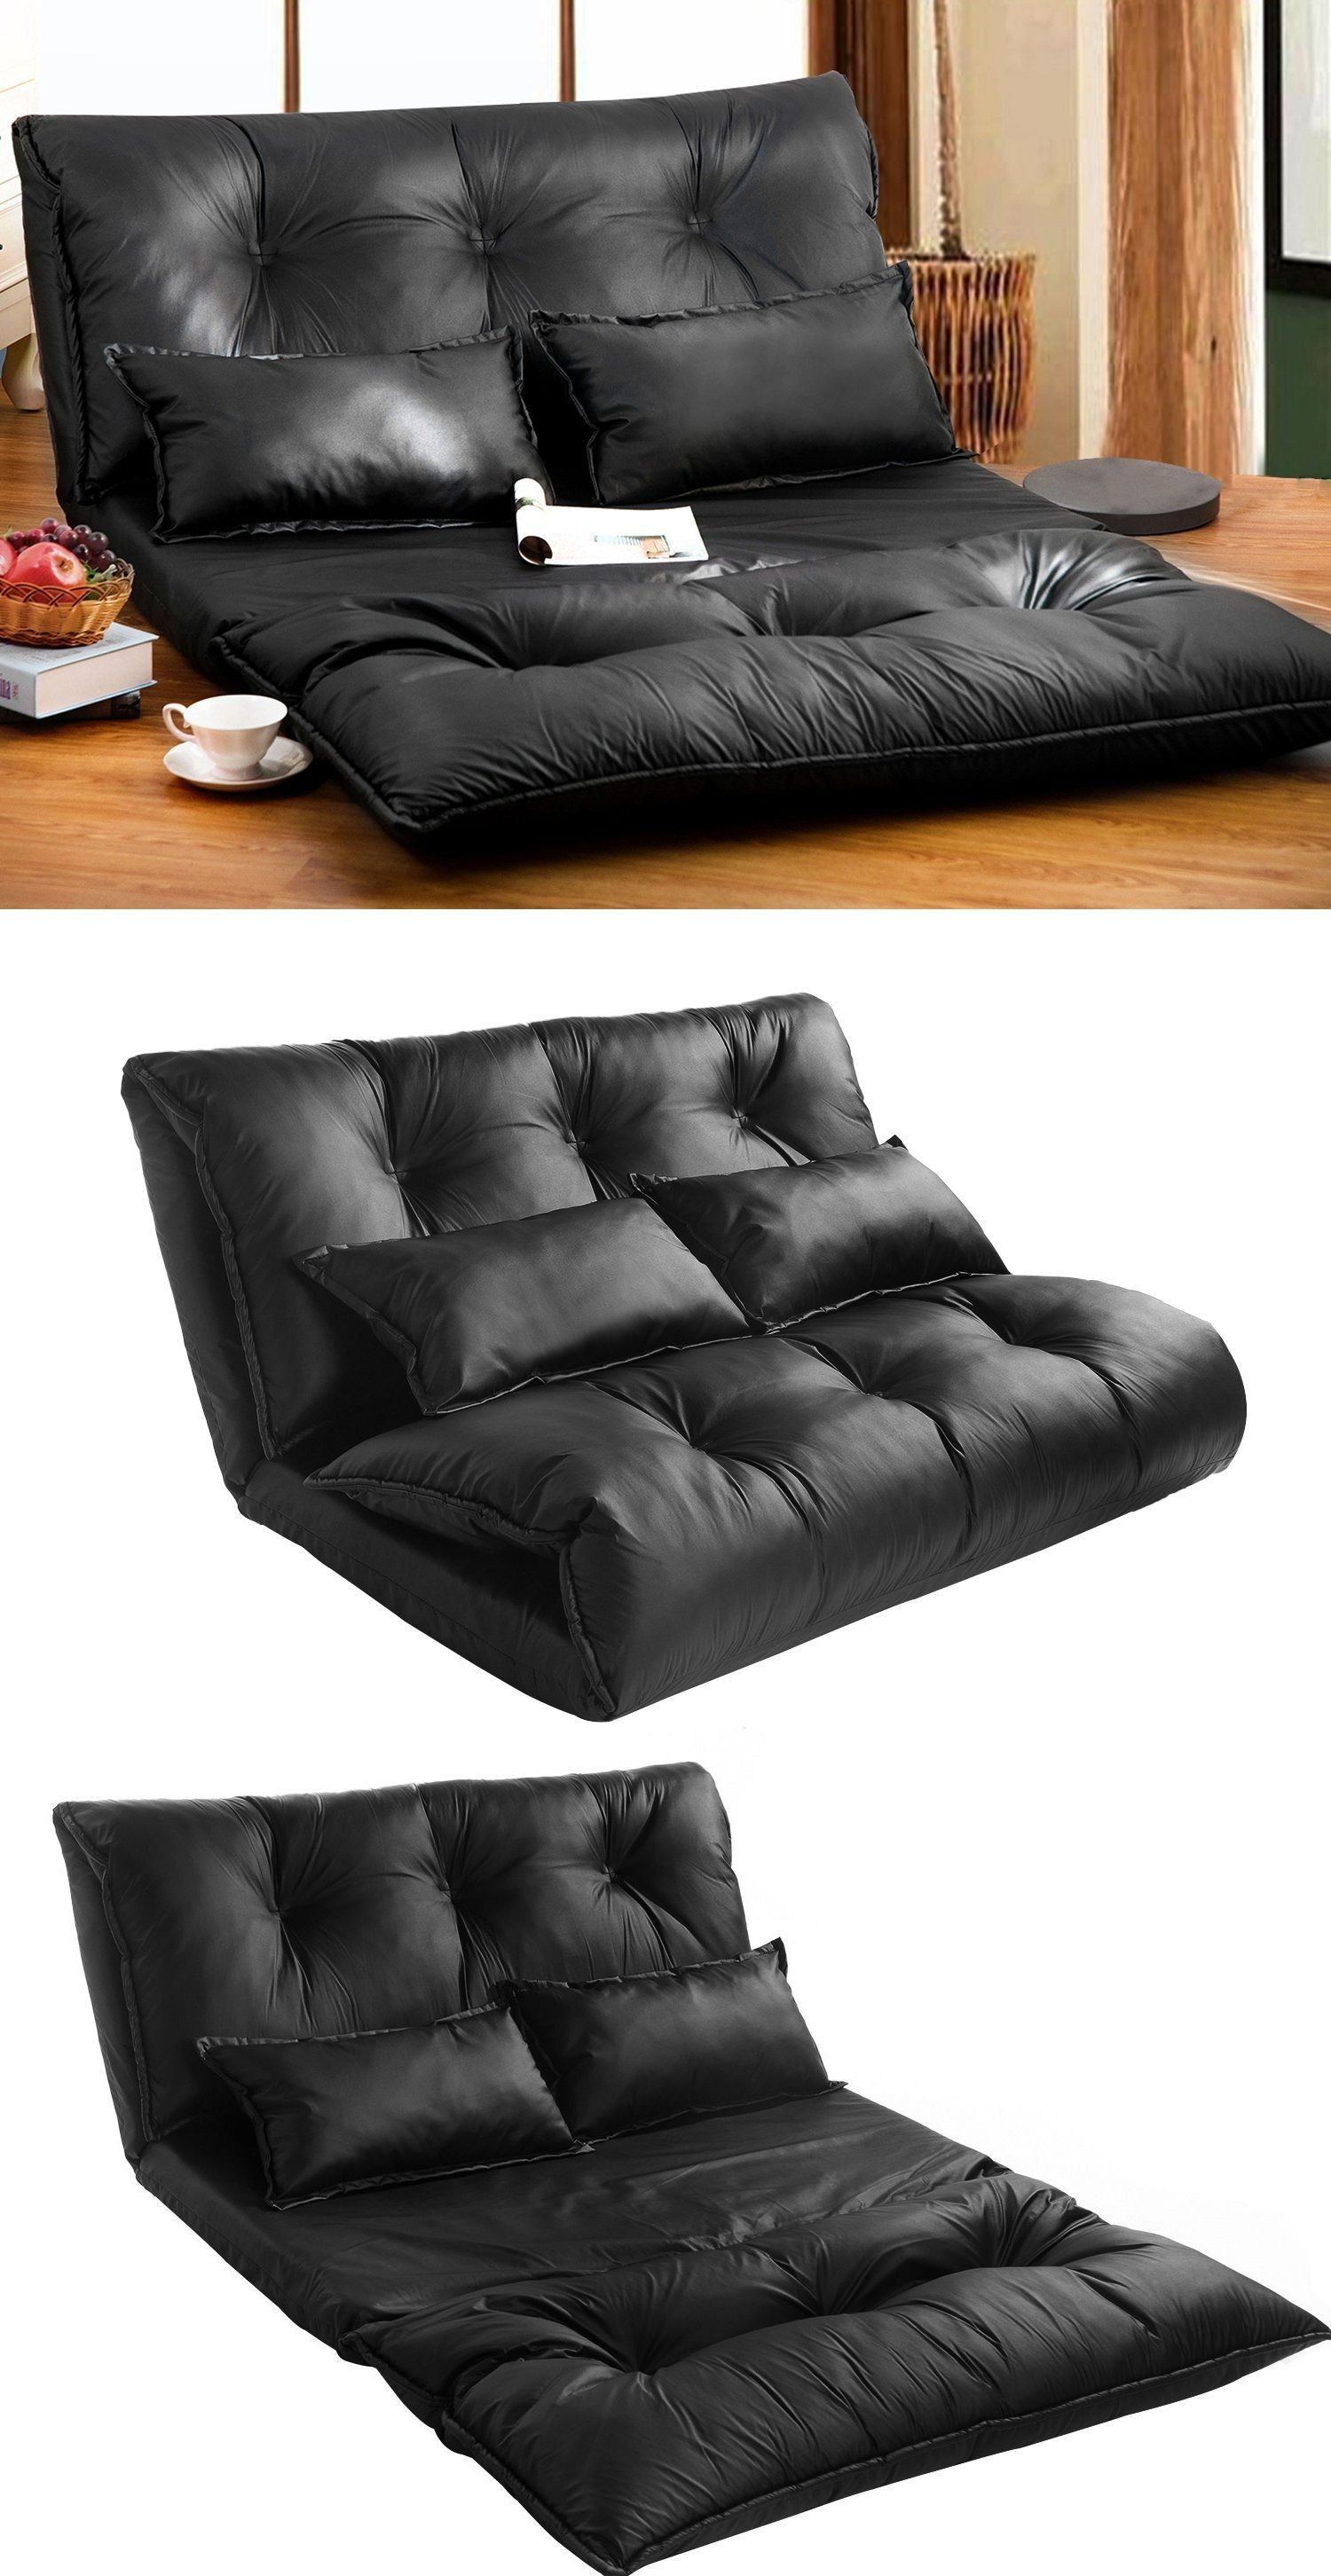 Pu Leather Foldable Modern Leisure Sofa Bed Video Gaming Sofa With